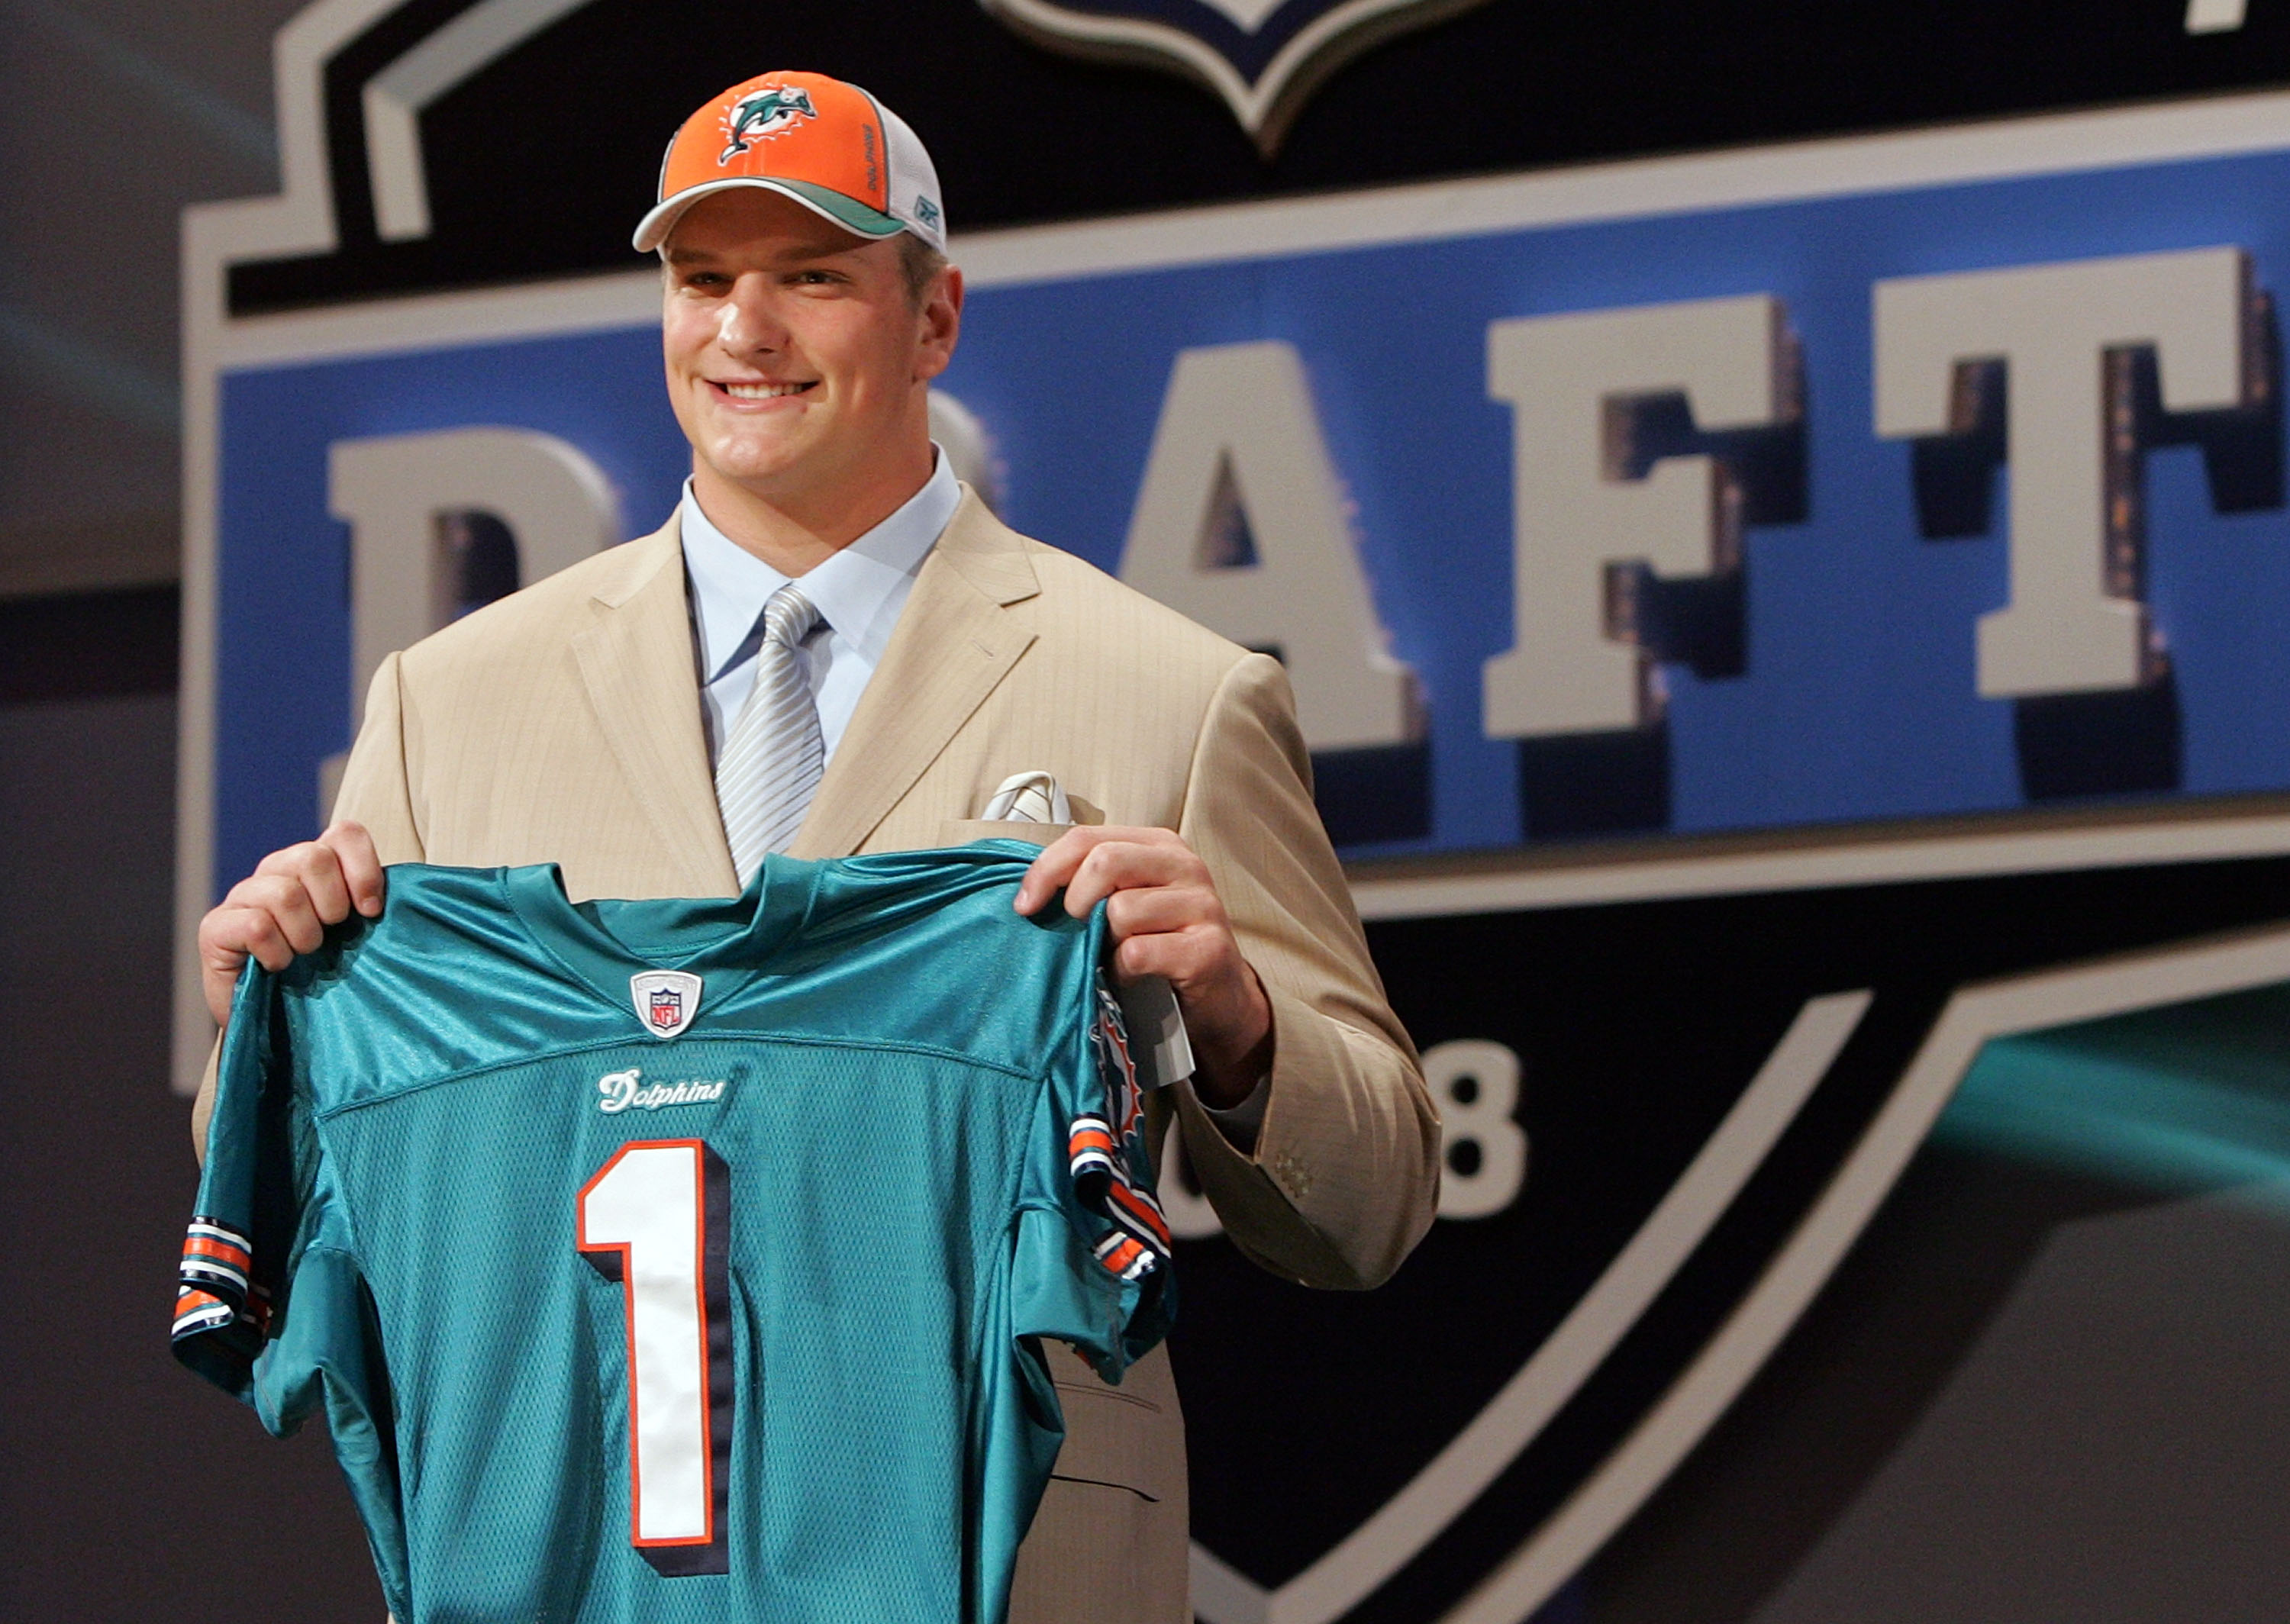 NEW YORK - APRIL 26:  Jake Long poses for a photo after being taken as the fisrt overall draft pick by the Miami Dolphins during the 2008 NFL Draft on April 26, 2008 at Radio City Music Hall in April 26, 2008 in New York City.  (Photo by Jim McIsaac/Getty